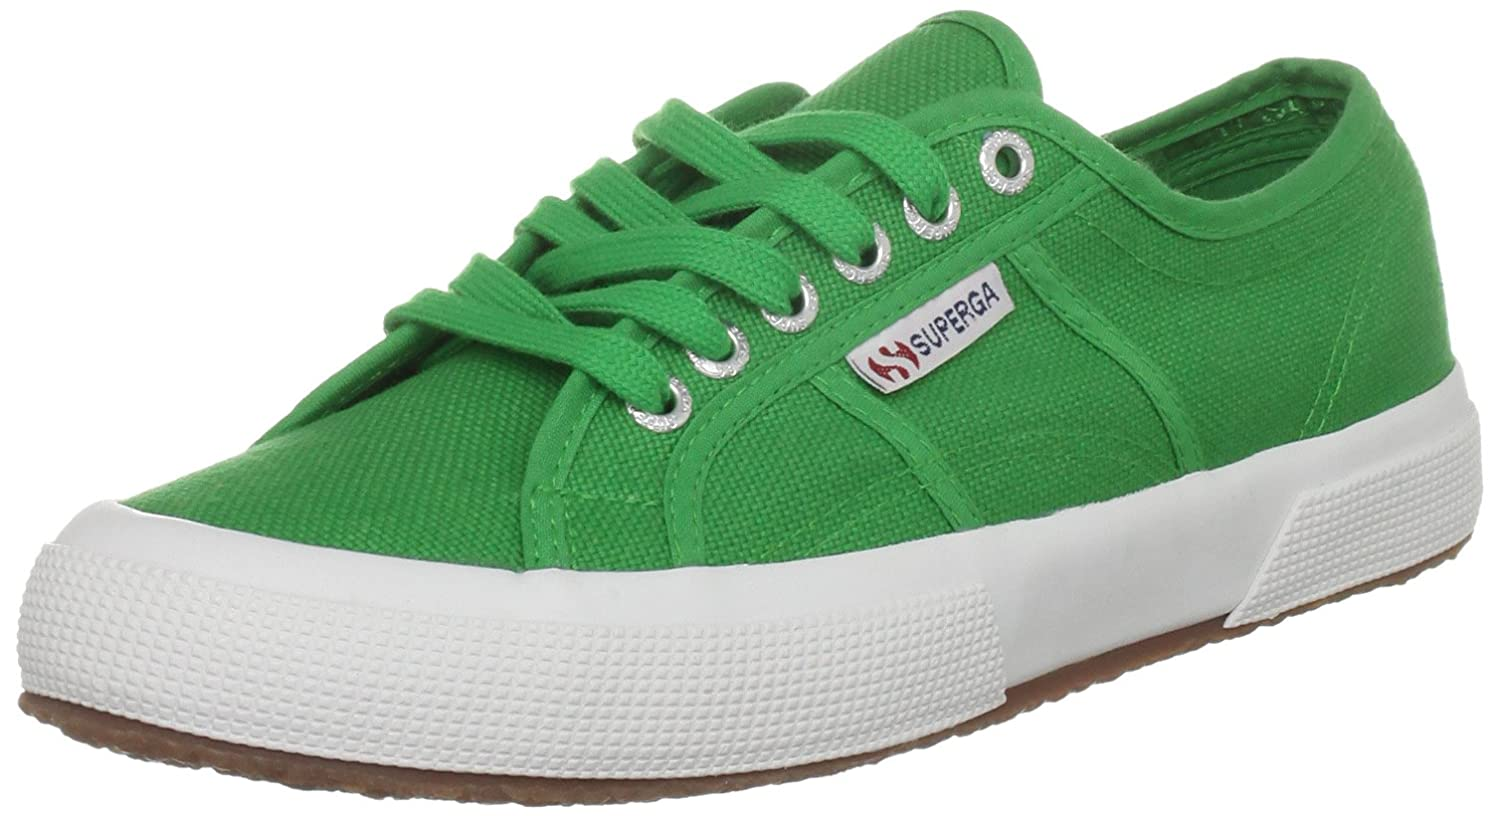 Superga 2750 Baskets Cotu Classic, Baskets 2750 mixte adulte Vert (C88 10045 Island Green) 751e2e0 - therethere.space